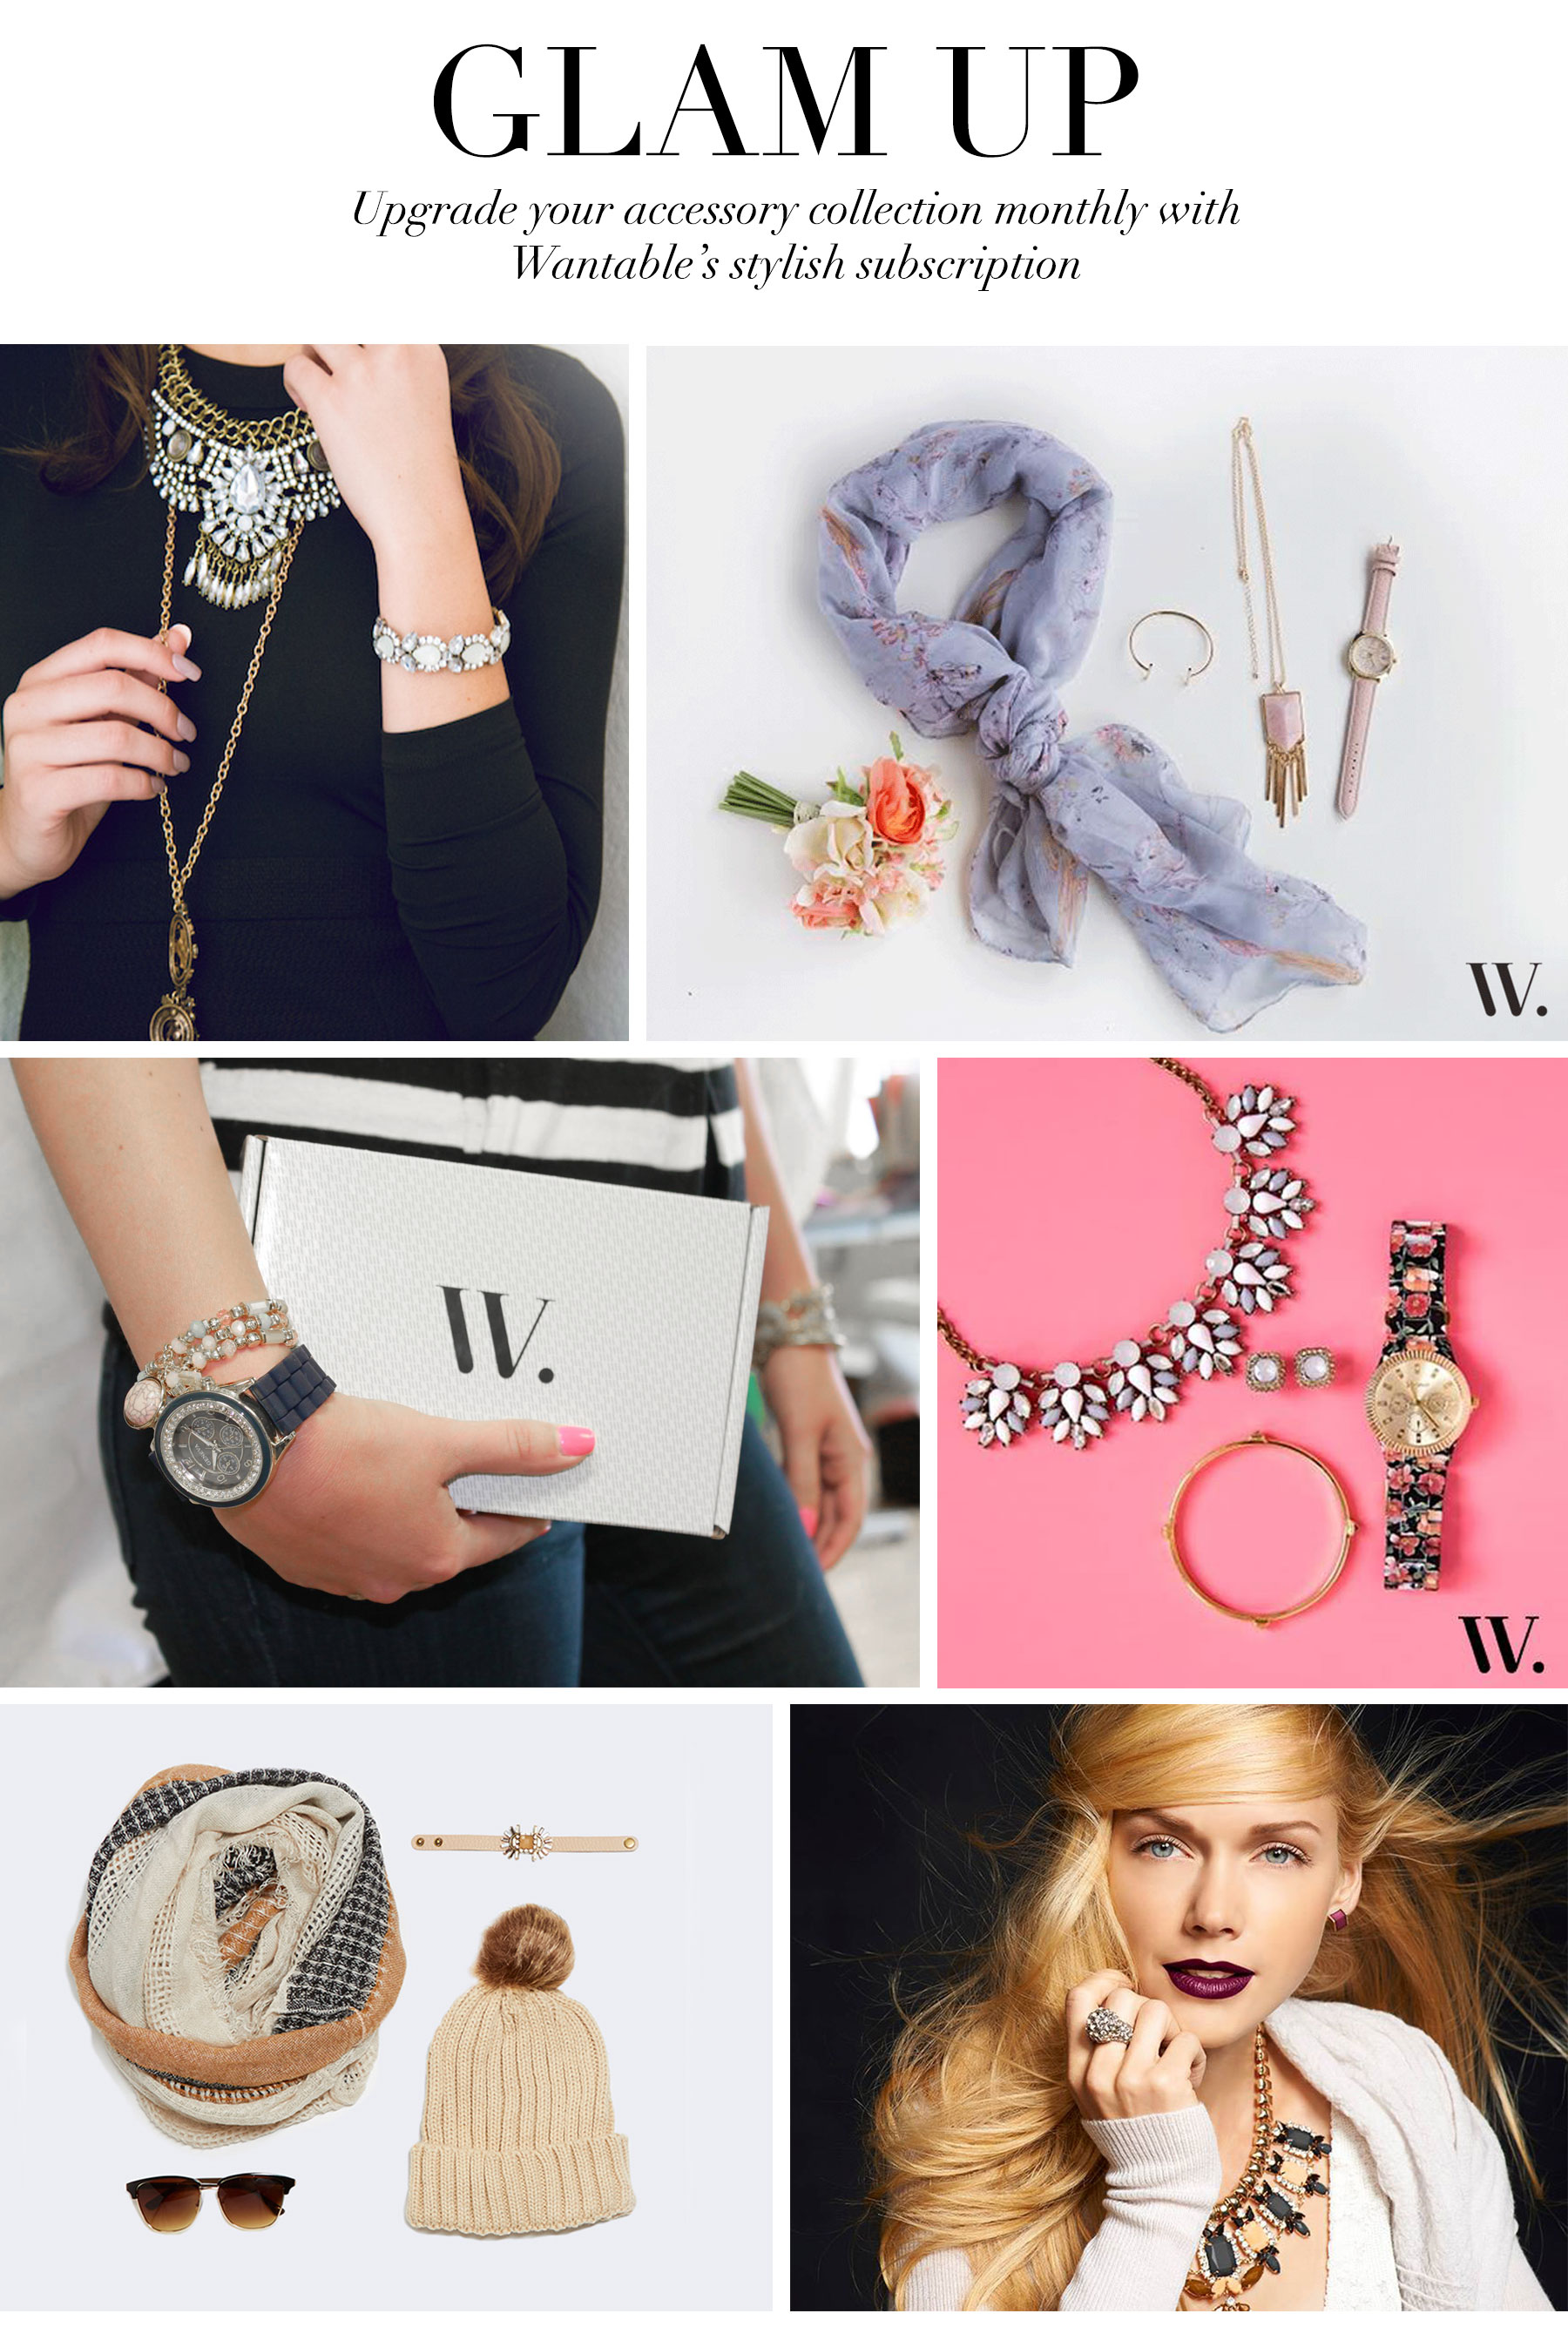 Ceci Johnson's Pampering Picks - Glam Up - Upgrade your accessory collection monthly with Wantable's stylish subscription